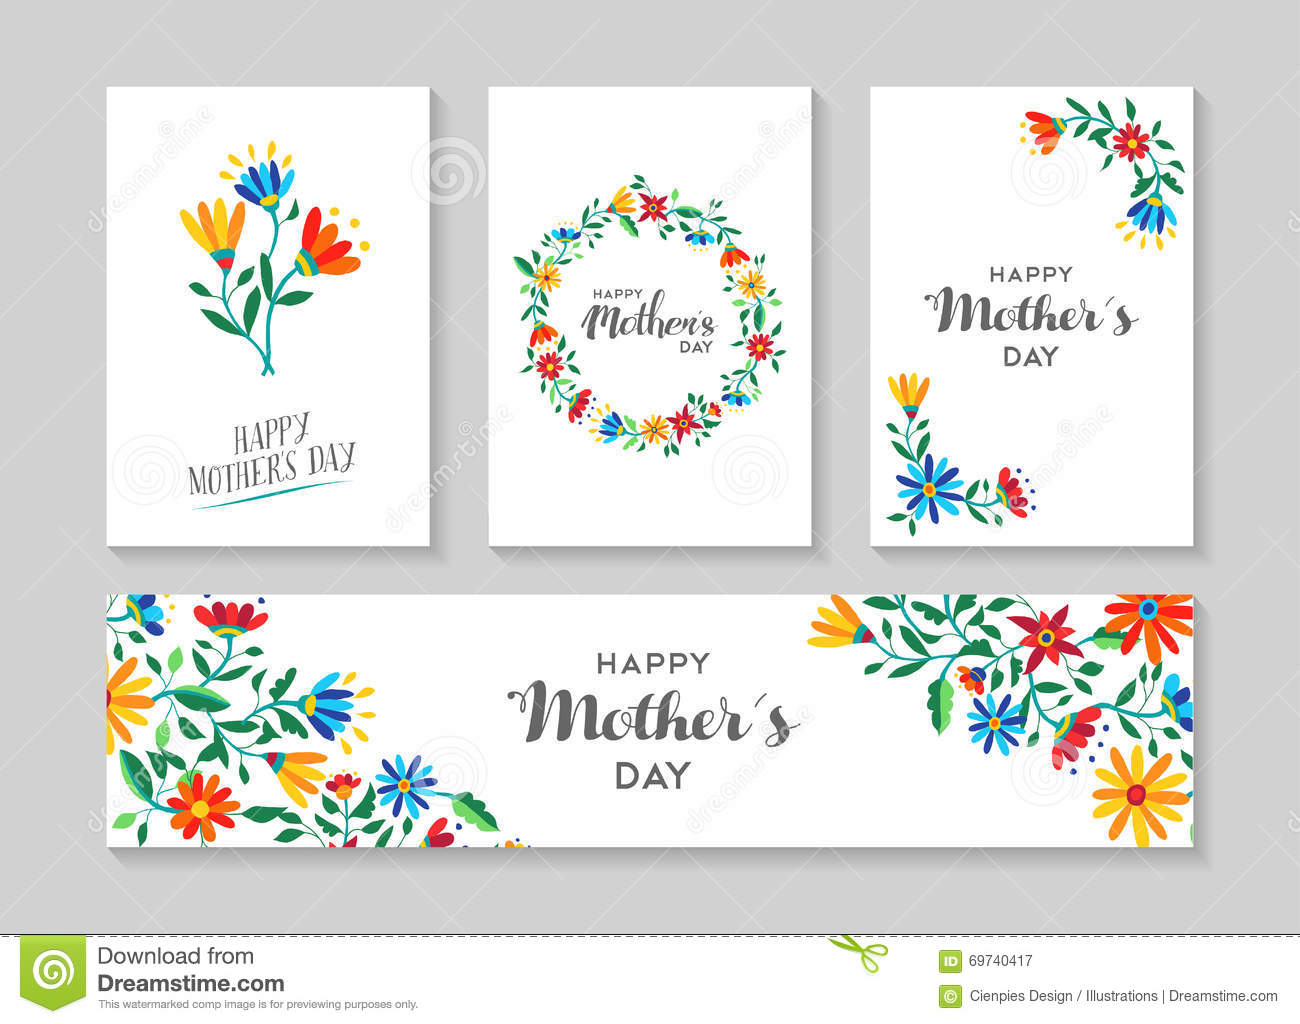 Royalty Free Vector. Download Happy Mothers Day Card ...